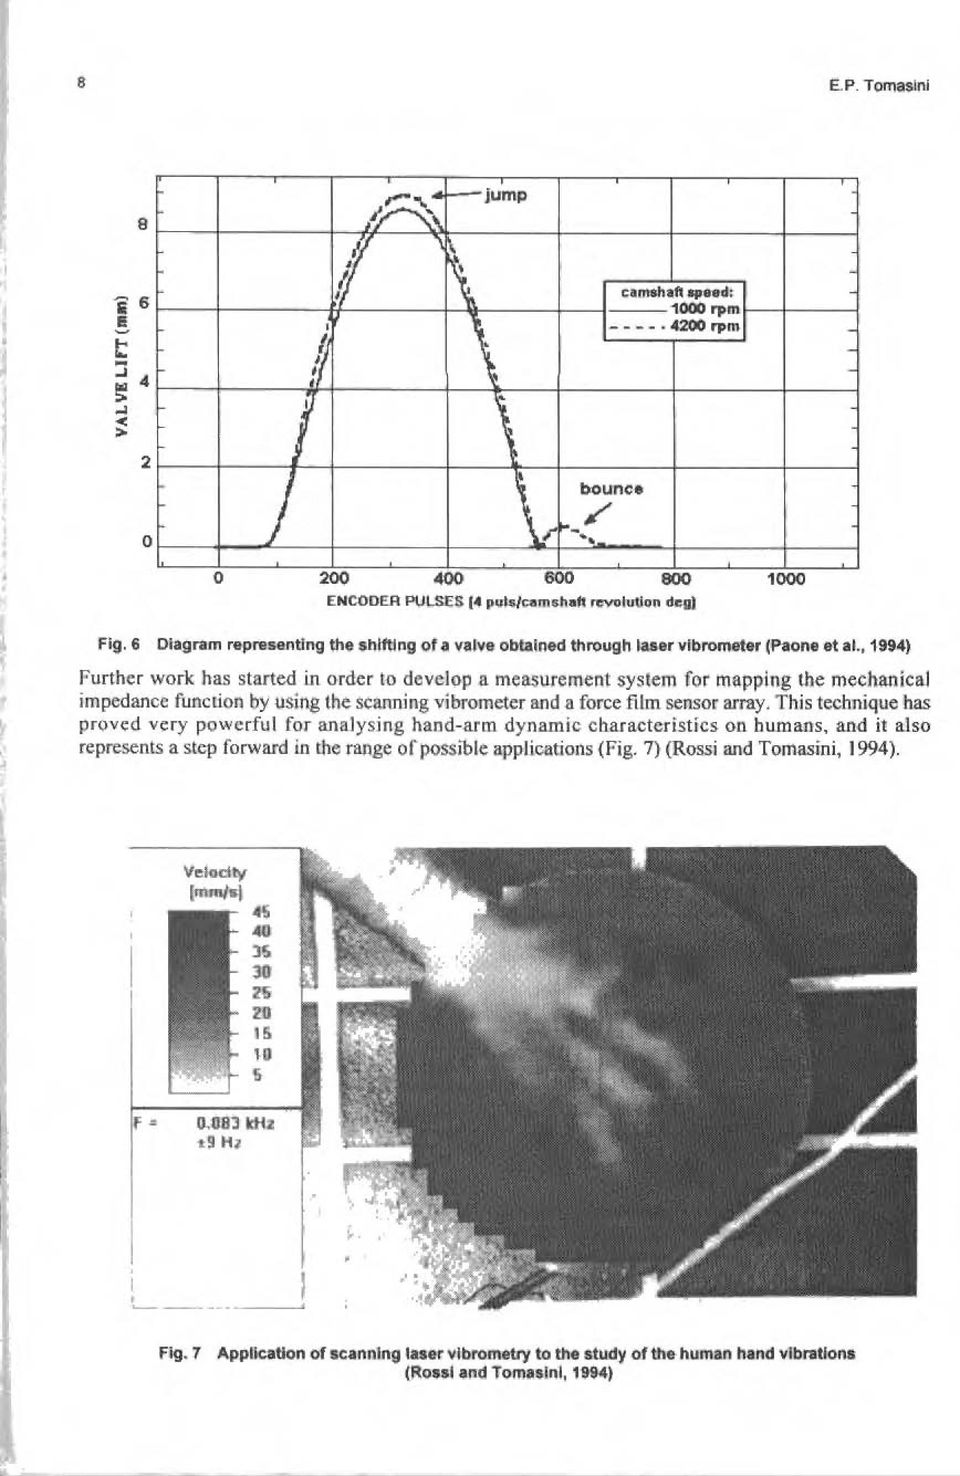 , 1994) Further work has started in order to develop a measurement system for mapping the mechanical impedance funcúon by using the scanning v.ibrometer and a force fitm sensor array.